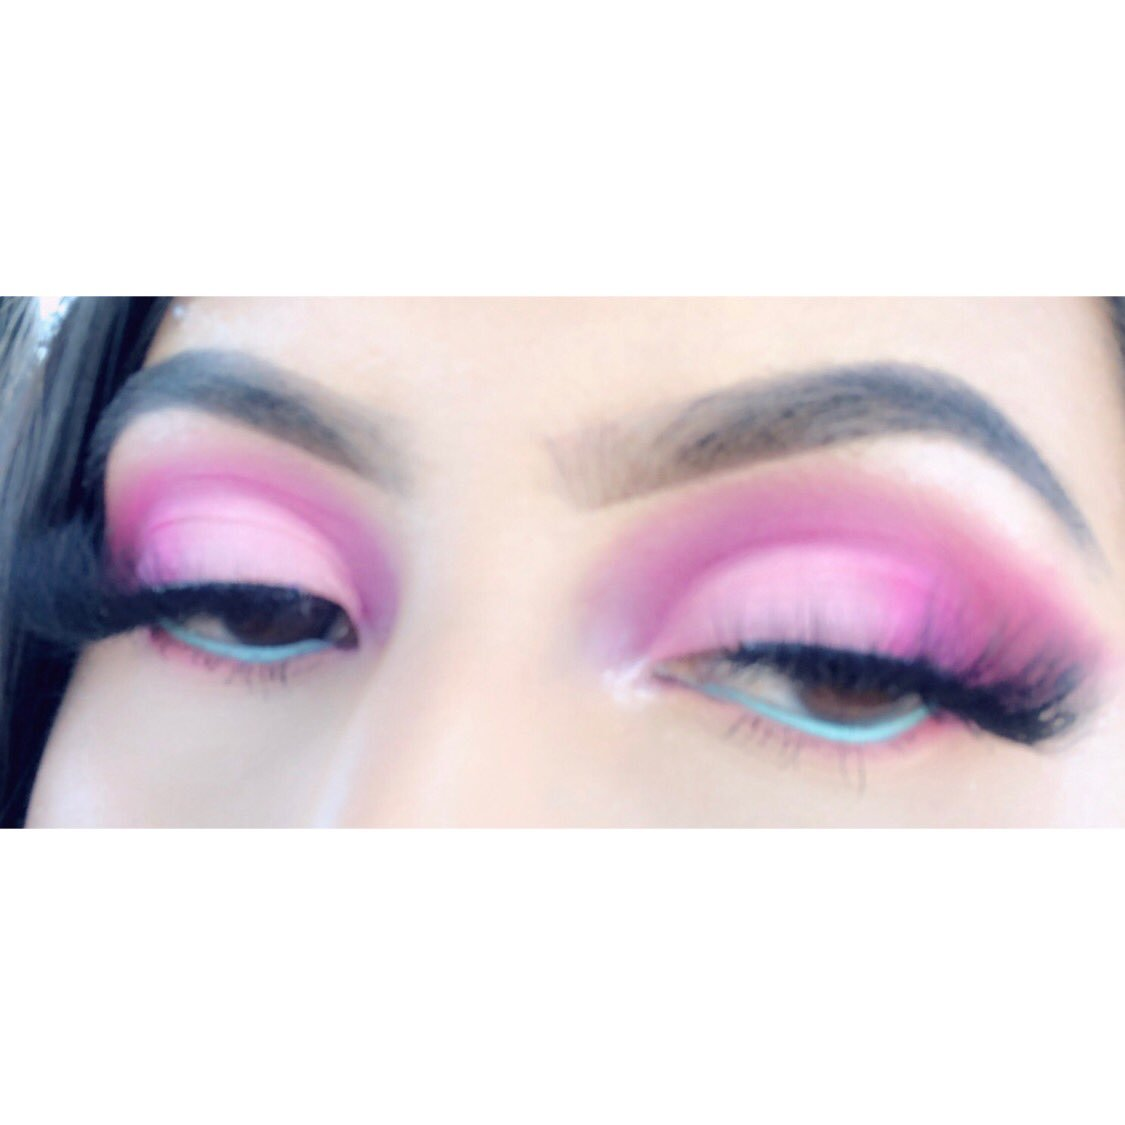 Yessicahh On Twitter Easy Cute Makeup Look Lash Style In Princess From Beautybarbeyond These Lashes Are Life Eyeshadow James Charles Palette Eyeliner Colourpop Creme Gel Liner In Prance Liner Makeup